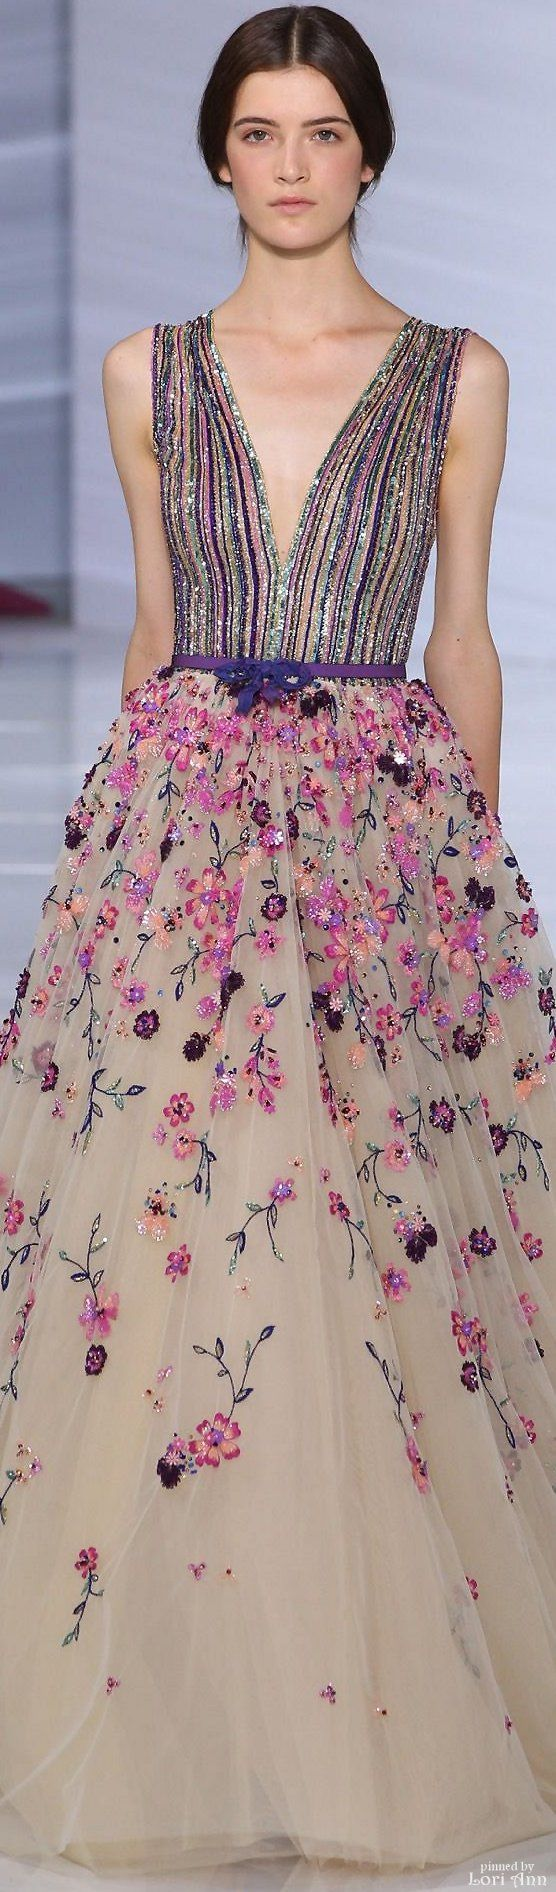 Georges Hobeika Couture Fall 2015